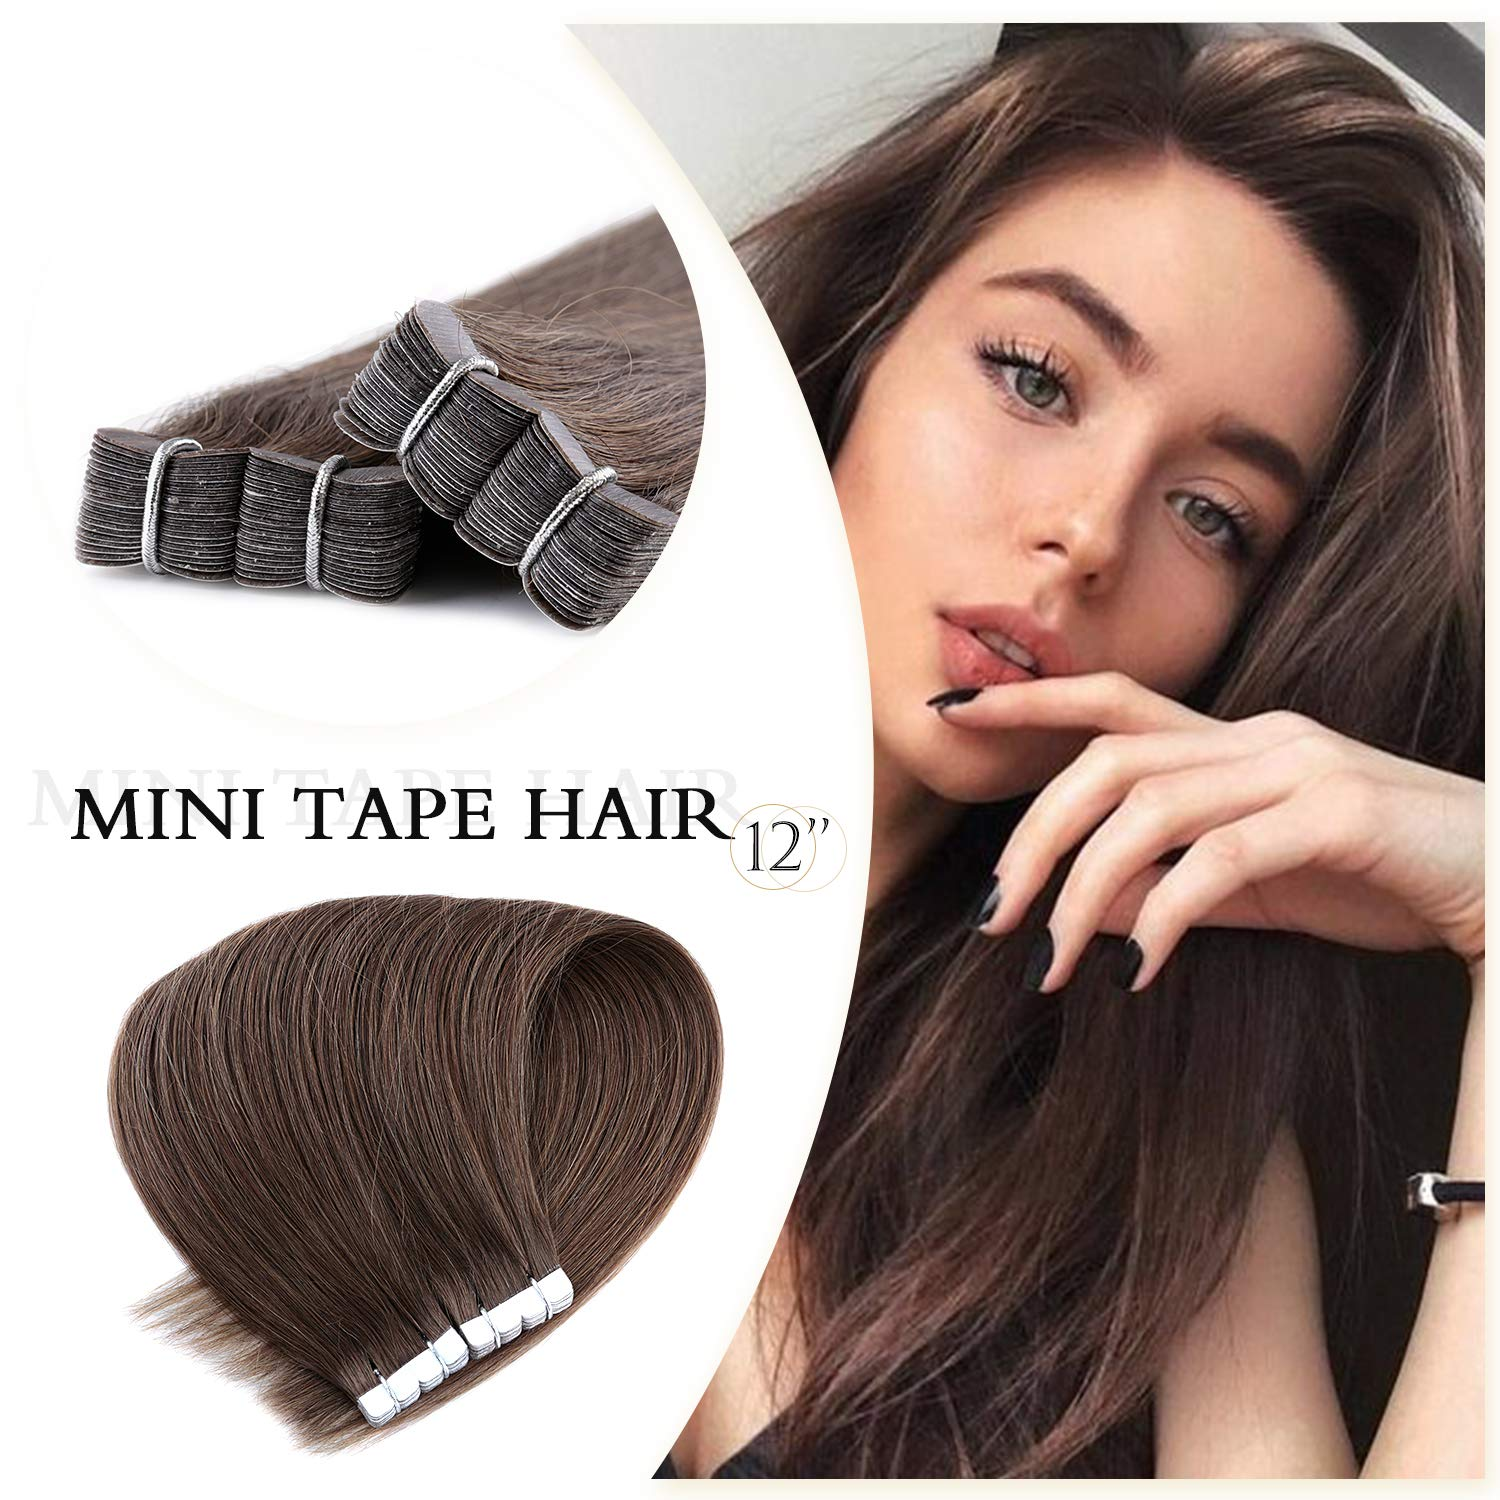 Neitsi 5A 20pcs 12 25g/lot Straight M Tape Hair Weft Extension Tape In Real Human Hair Extensions (10A#) Ltd